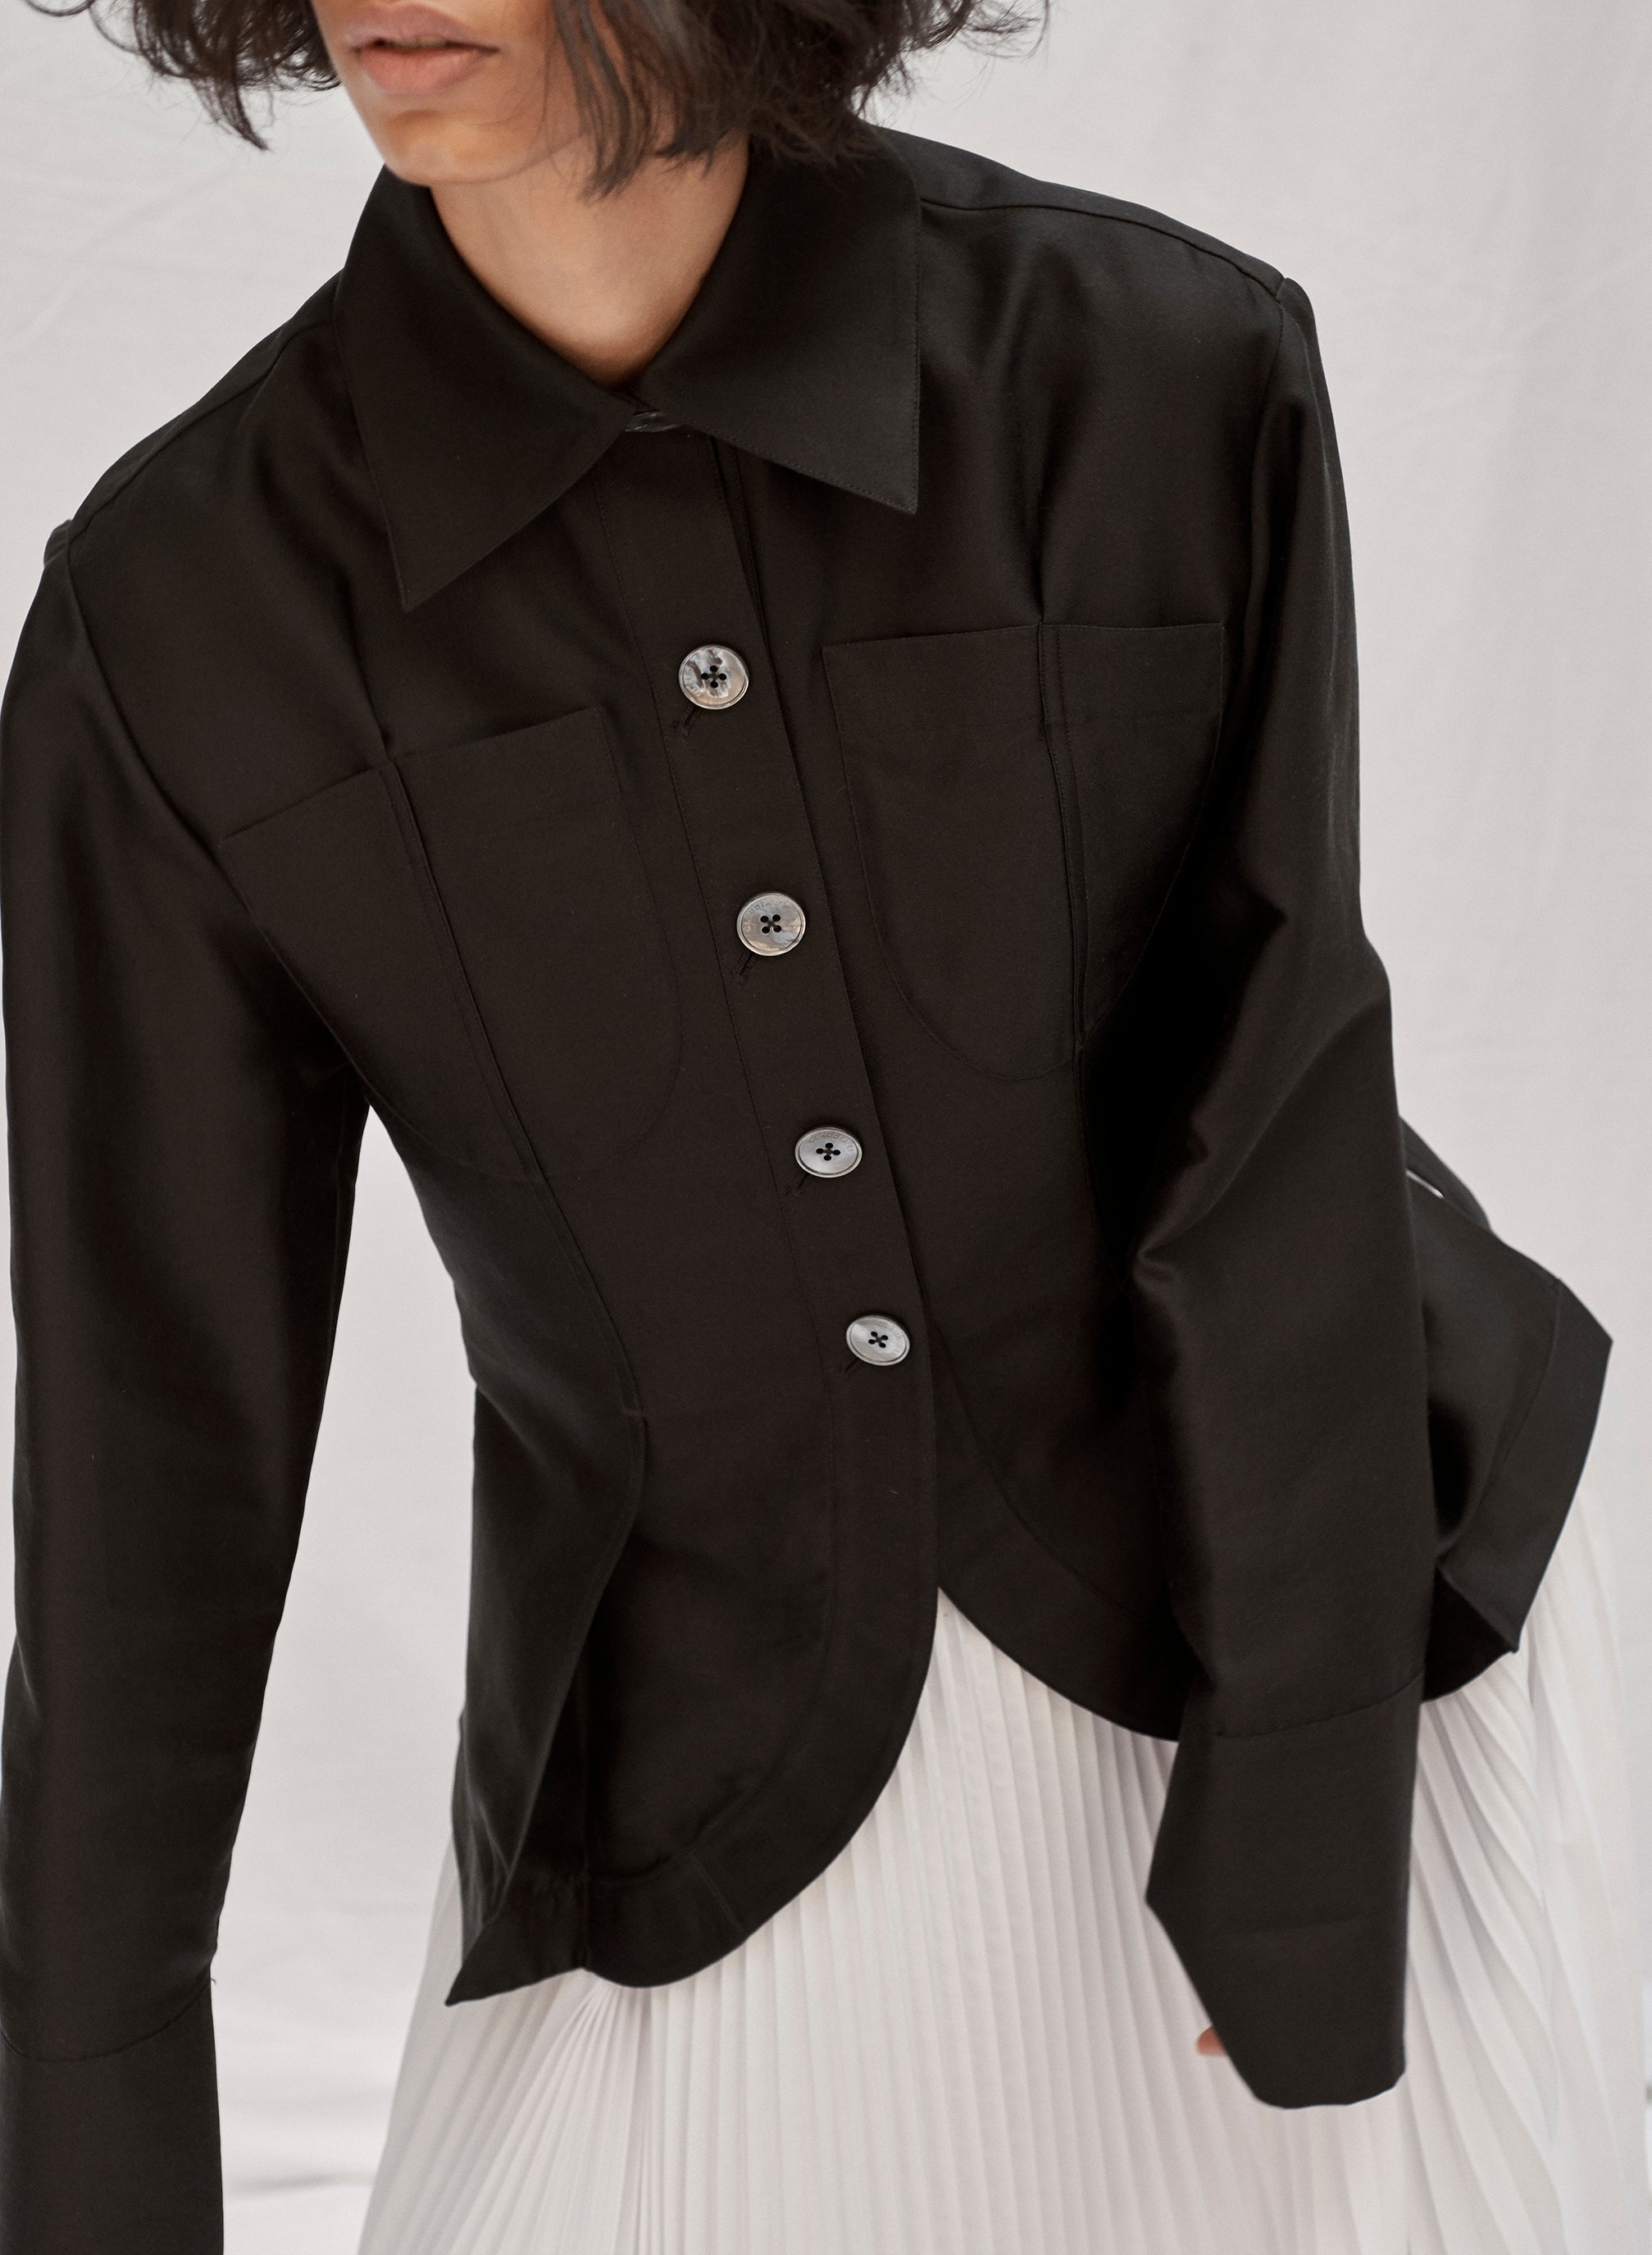 claudia li fall winter 2019 pintuck tailored relaxed fit shirt kendall jenner style